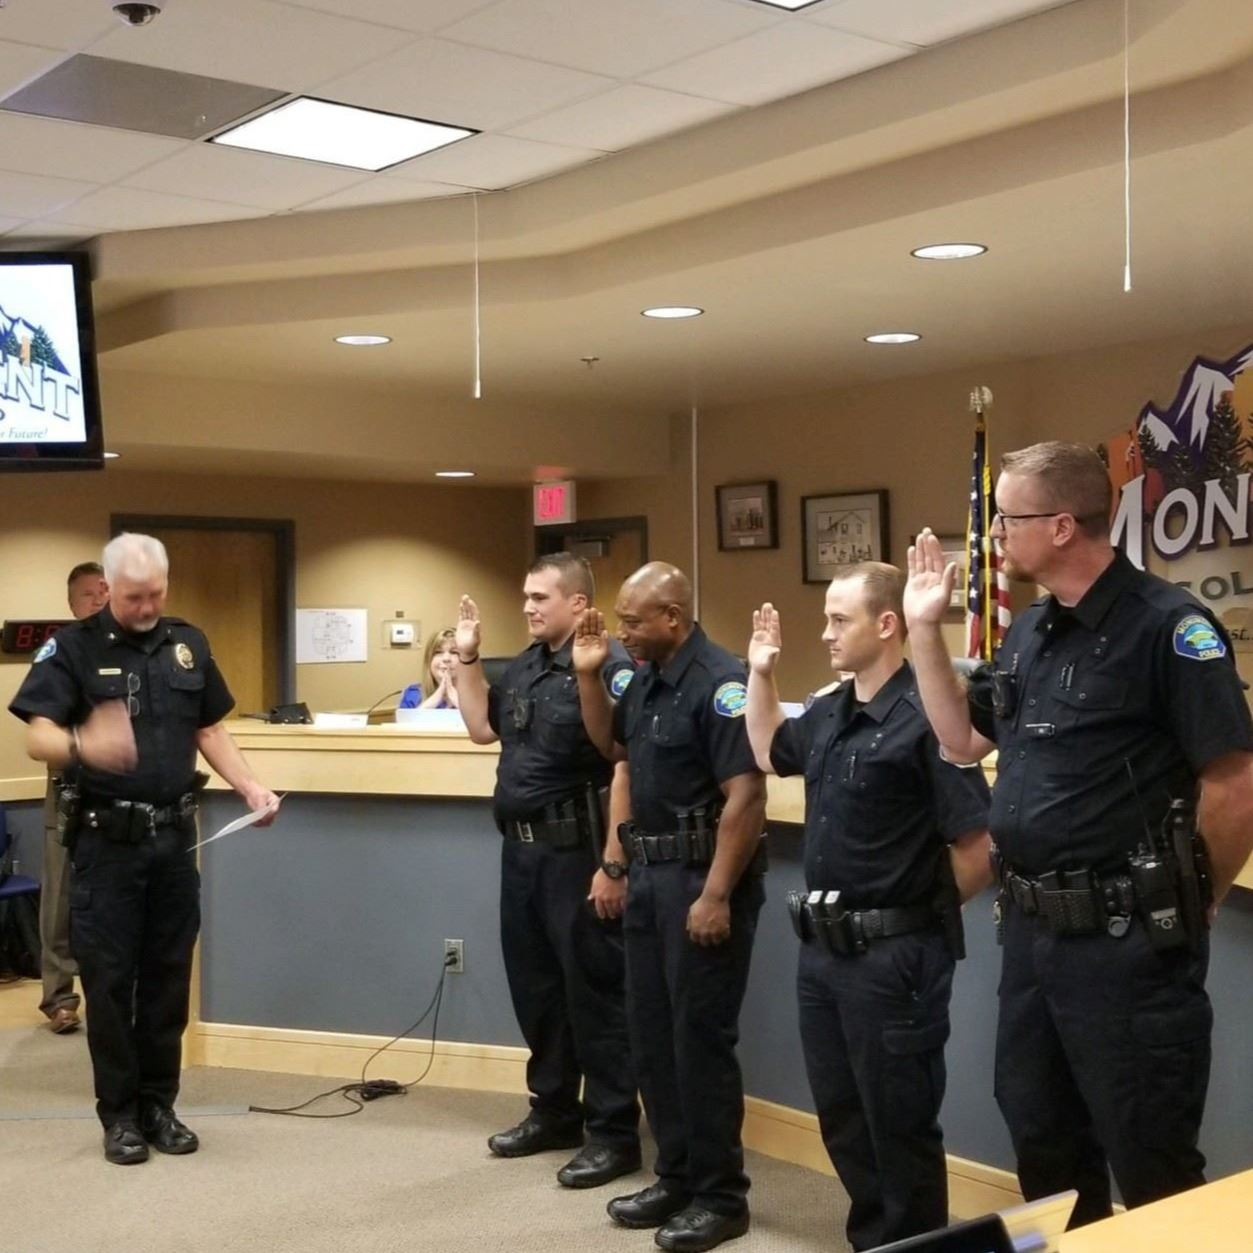 police officers standing in a room